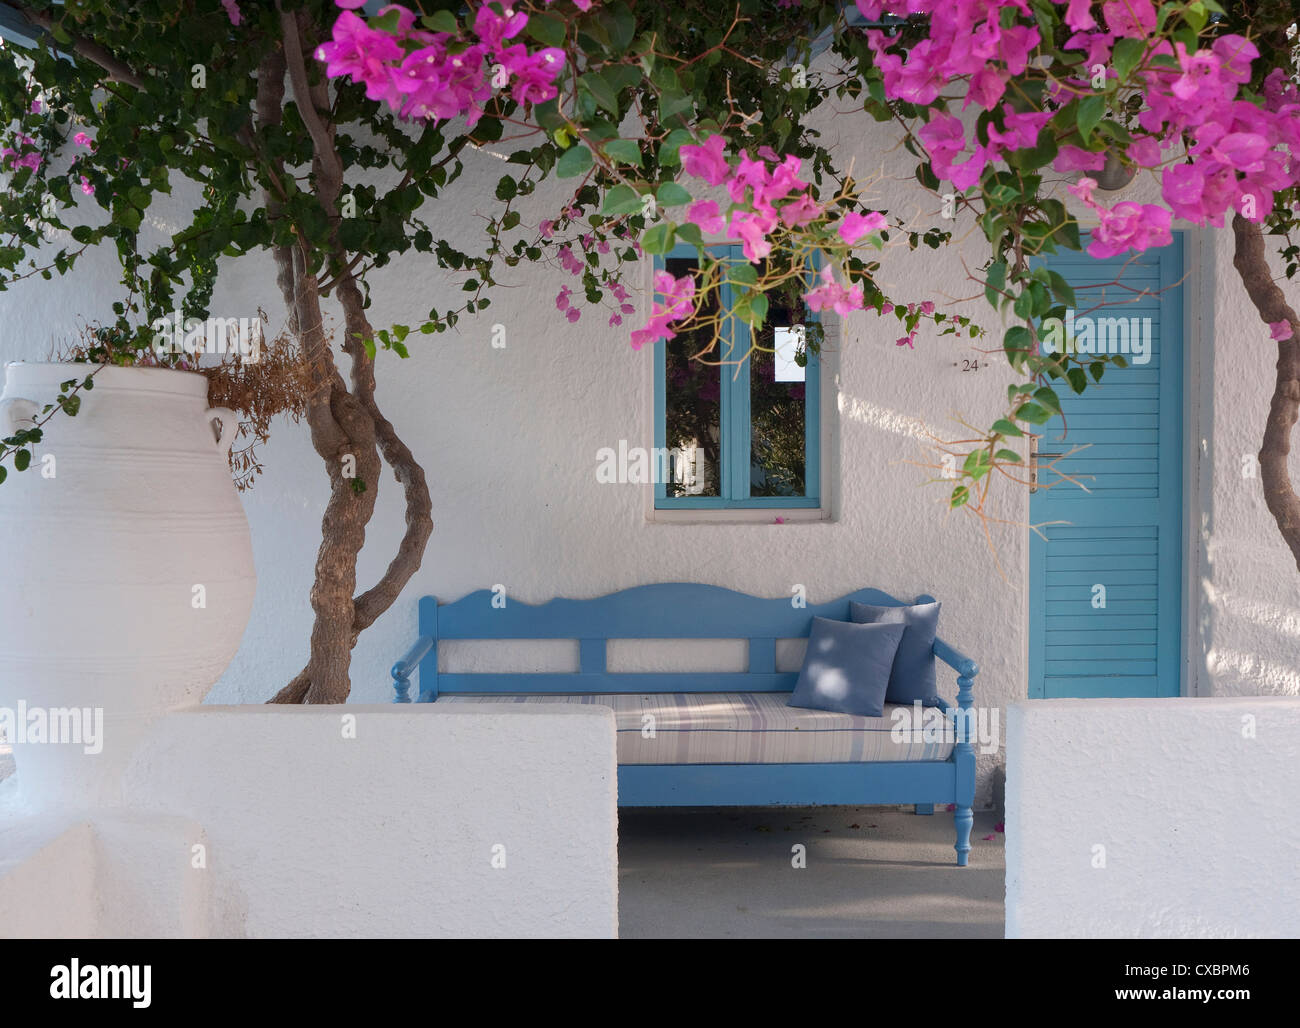 bougainvillea flowers outside hotel room, kamari, santorini, greece - Stock Image